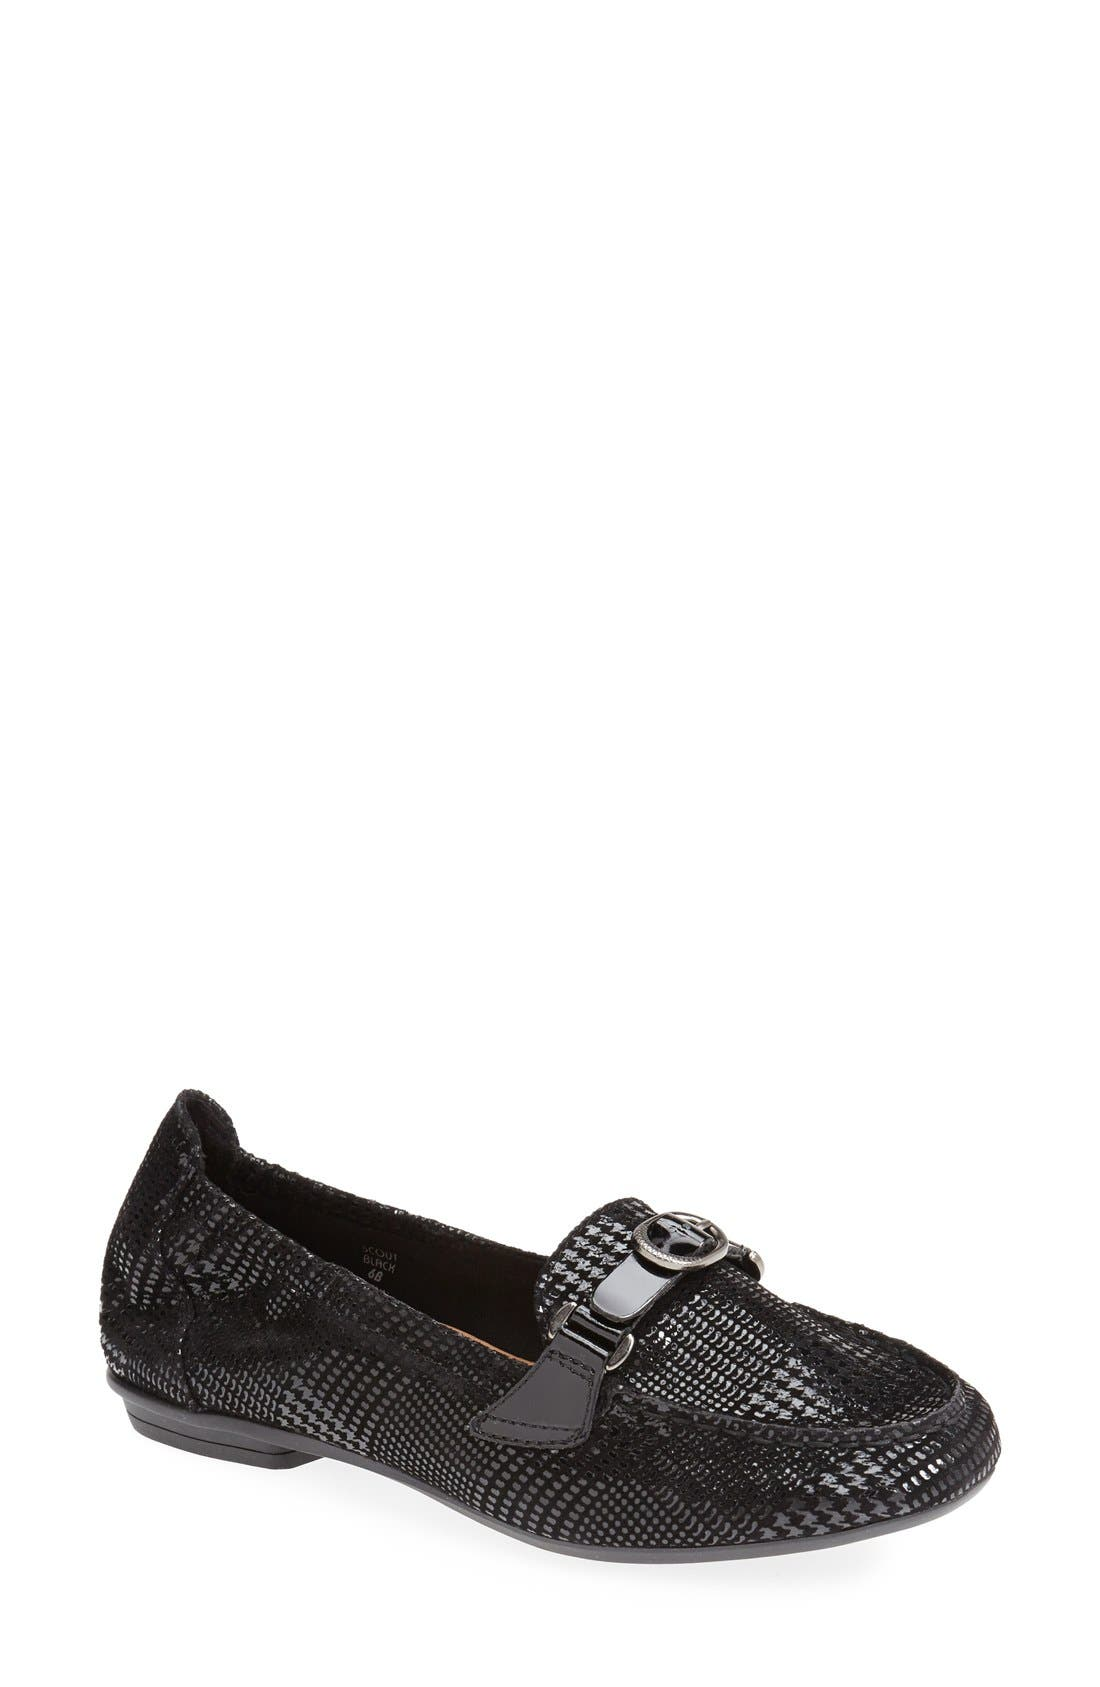 Main Image - Earth® 'Scout' Loafer (Women)